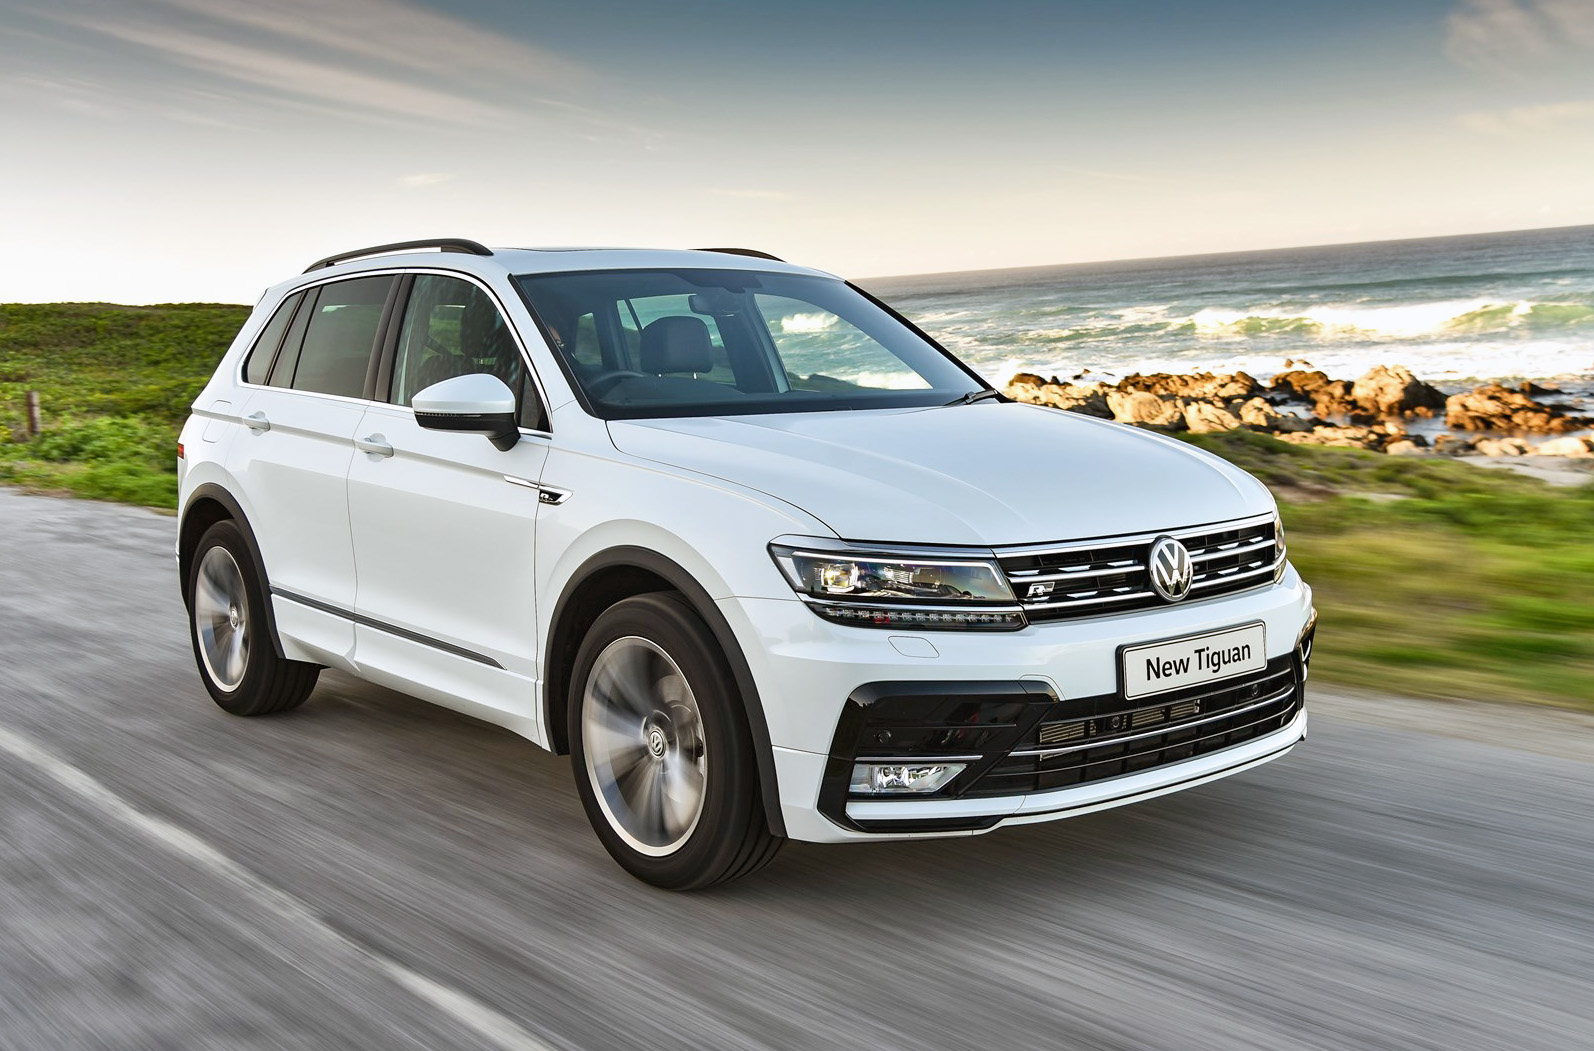 new vw tiguan flagship for sa here s how much car vw tiguan fuse box melted vw tiguan tsi 4motion #1